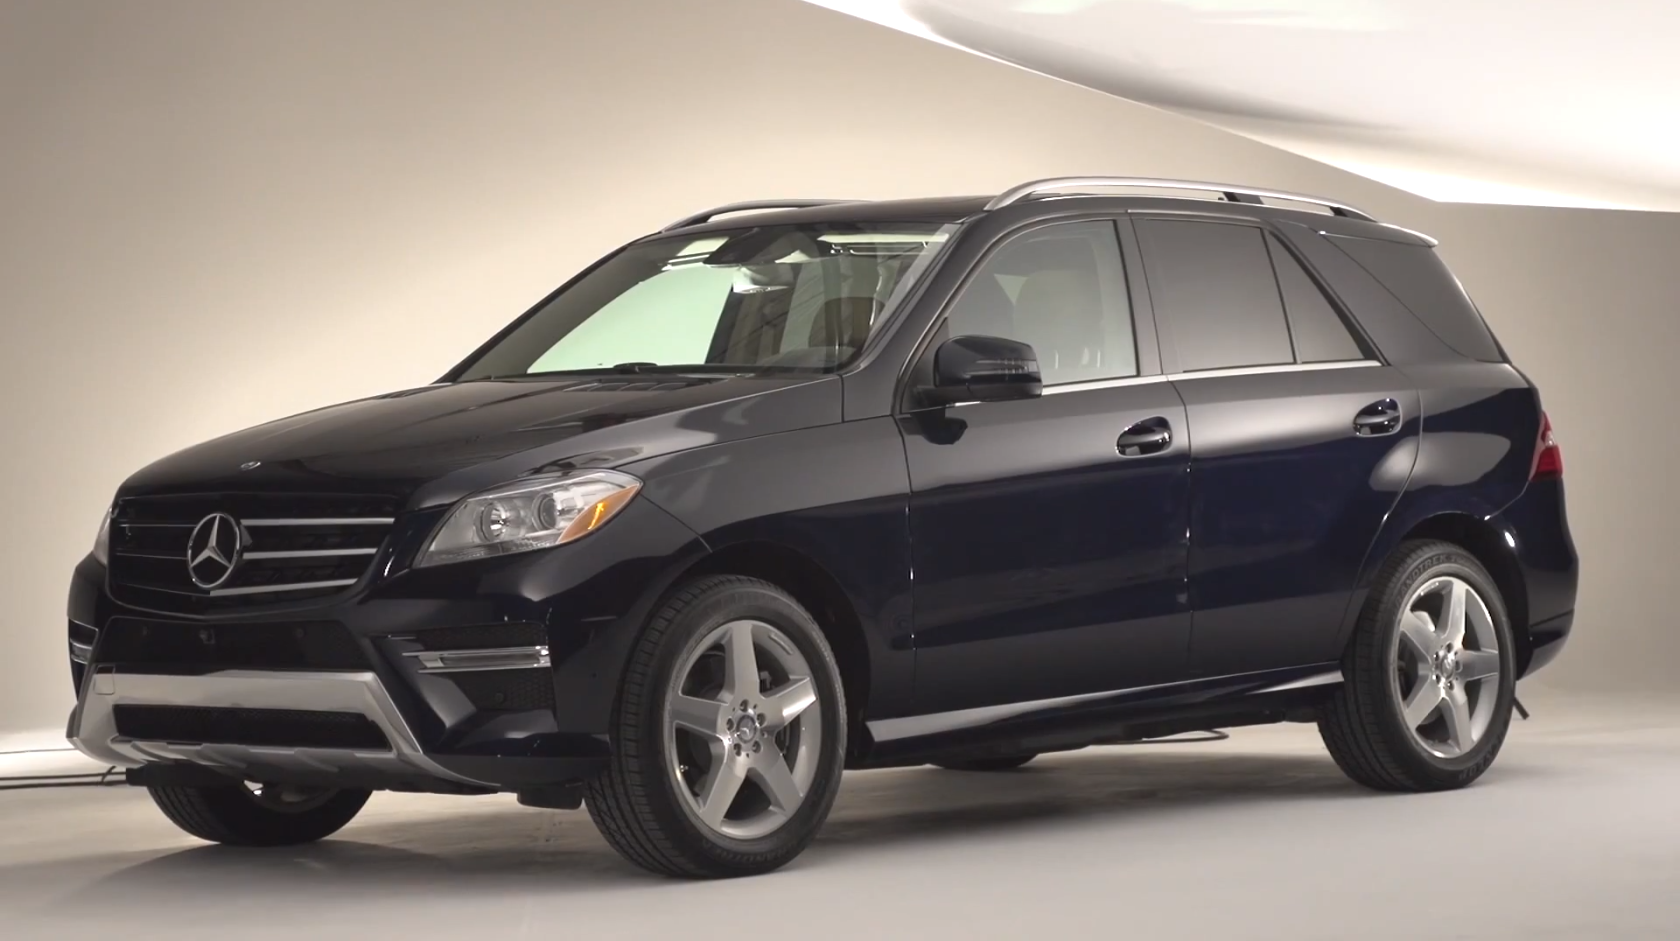 Mercedes-Benz ML 350 BlueTec Gets Reviewed by Drive ...